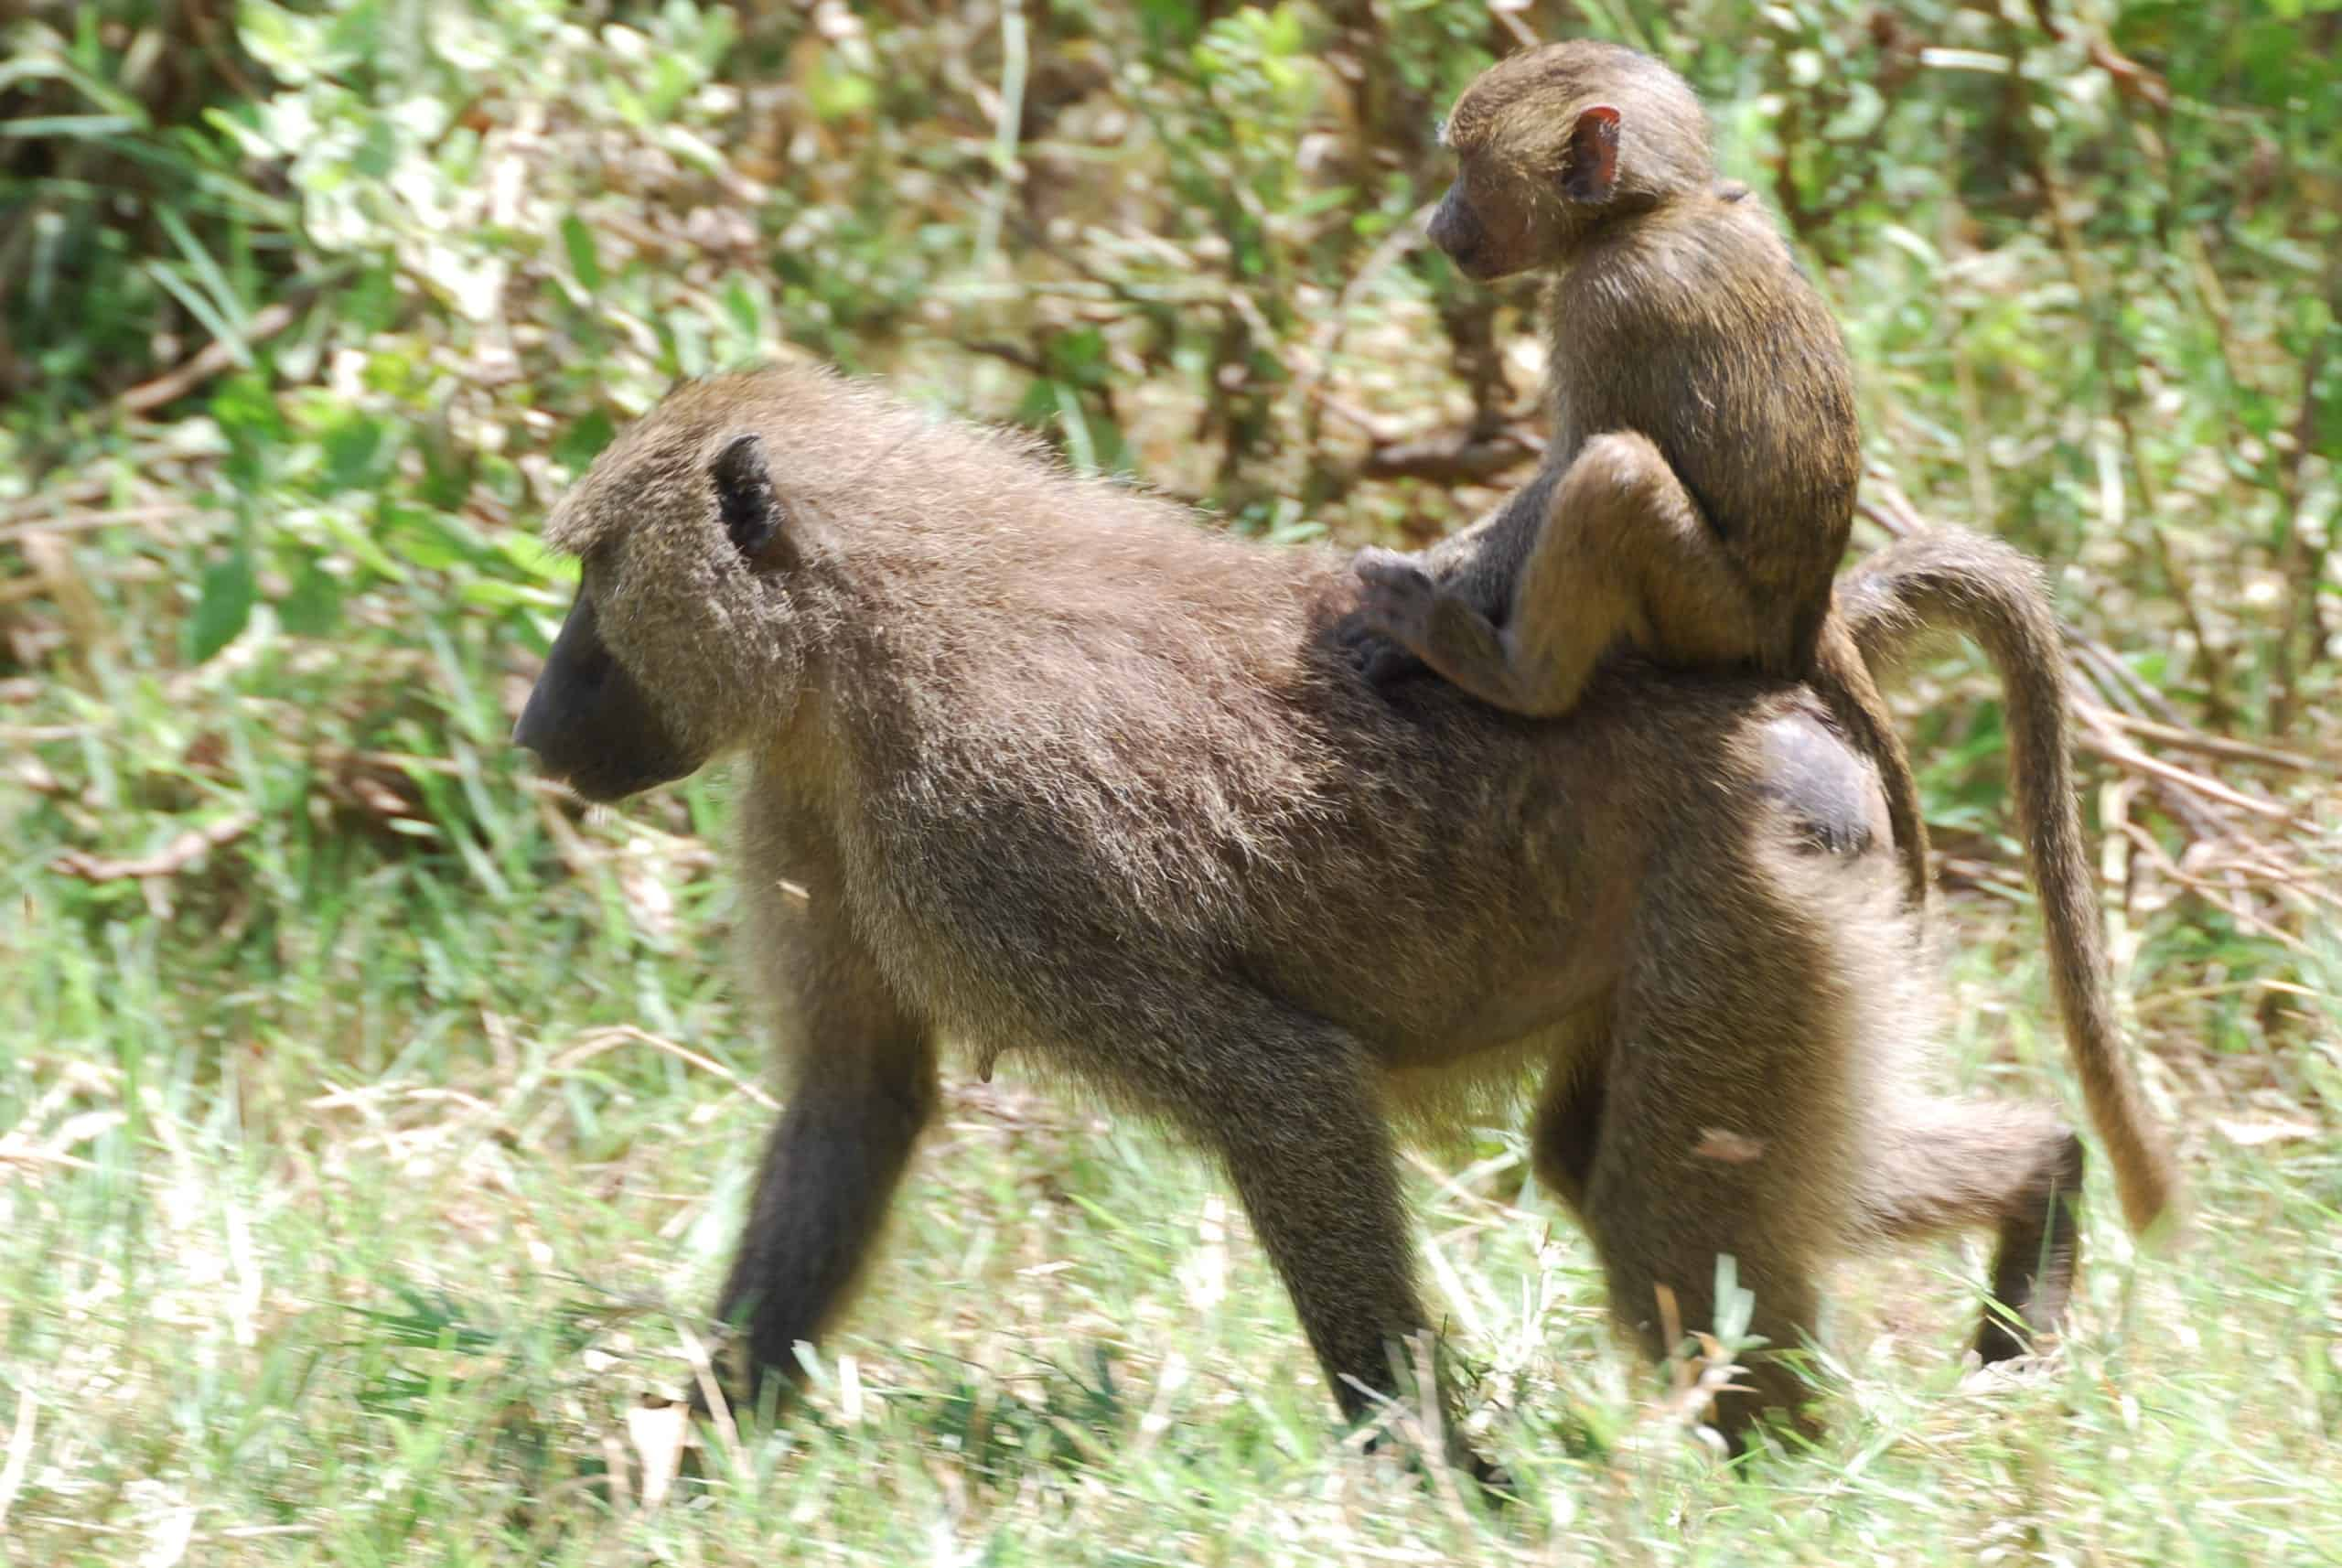 Female baboon with infant on her back strolls across the grass.